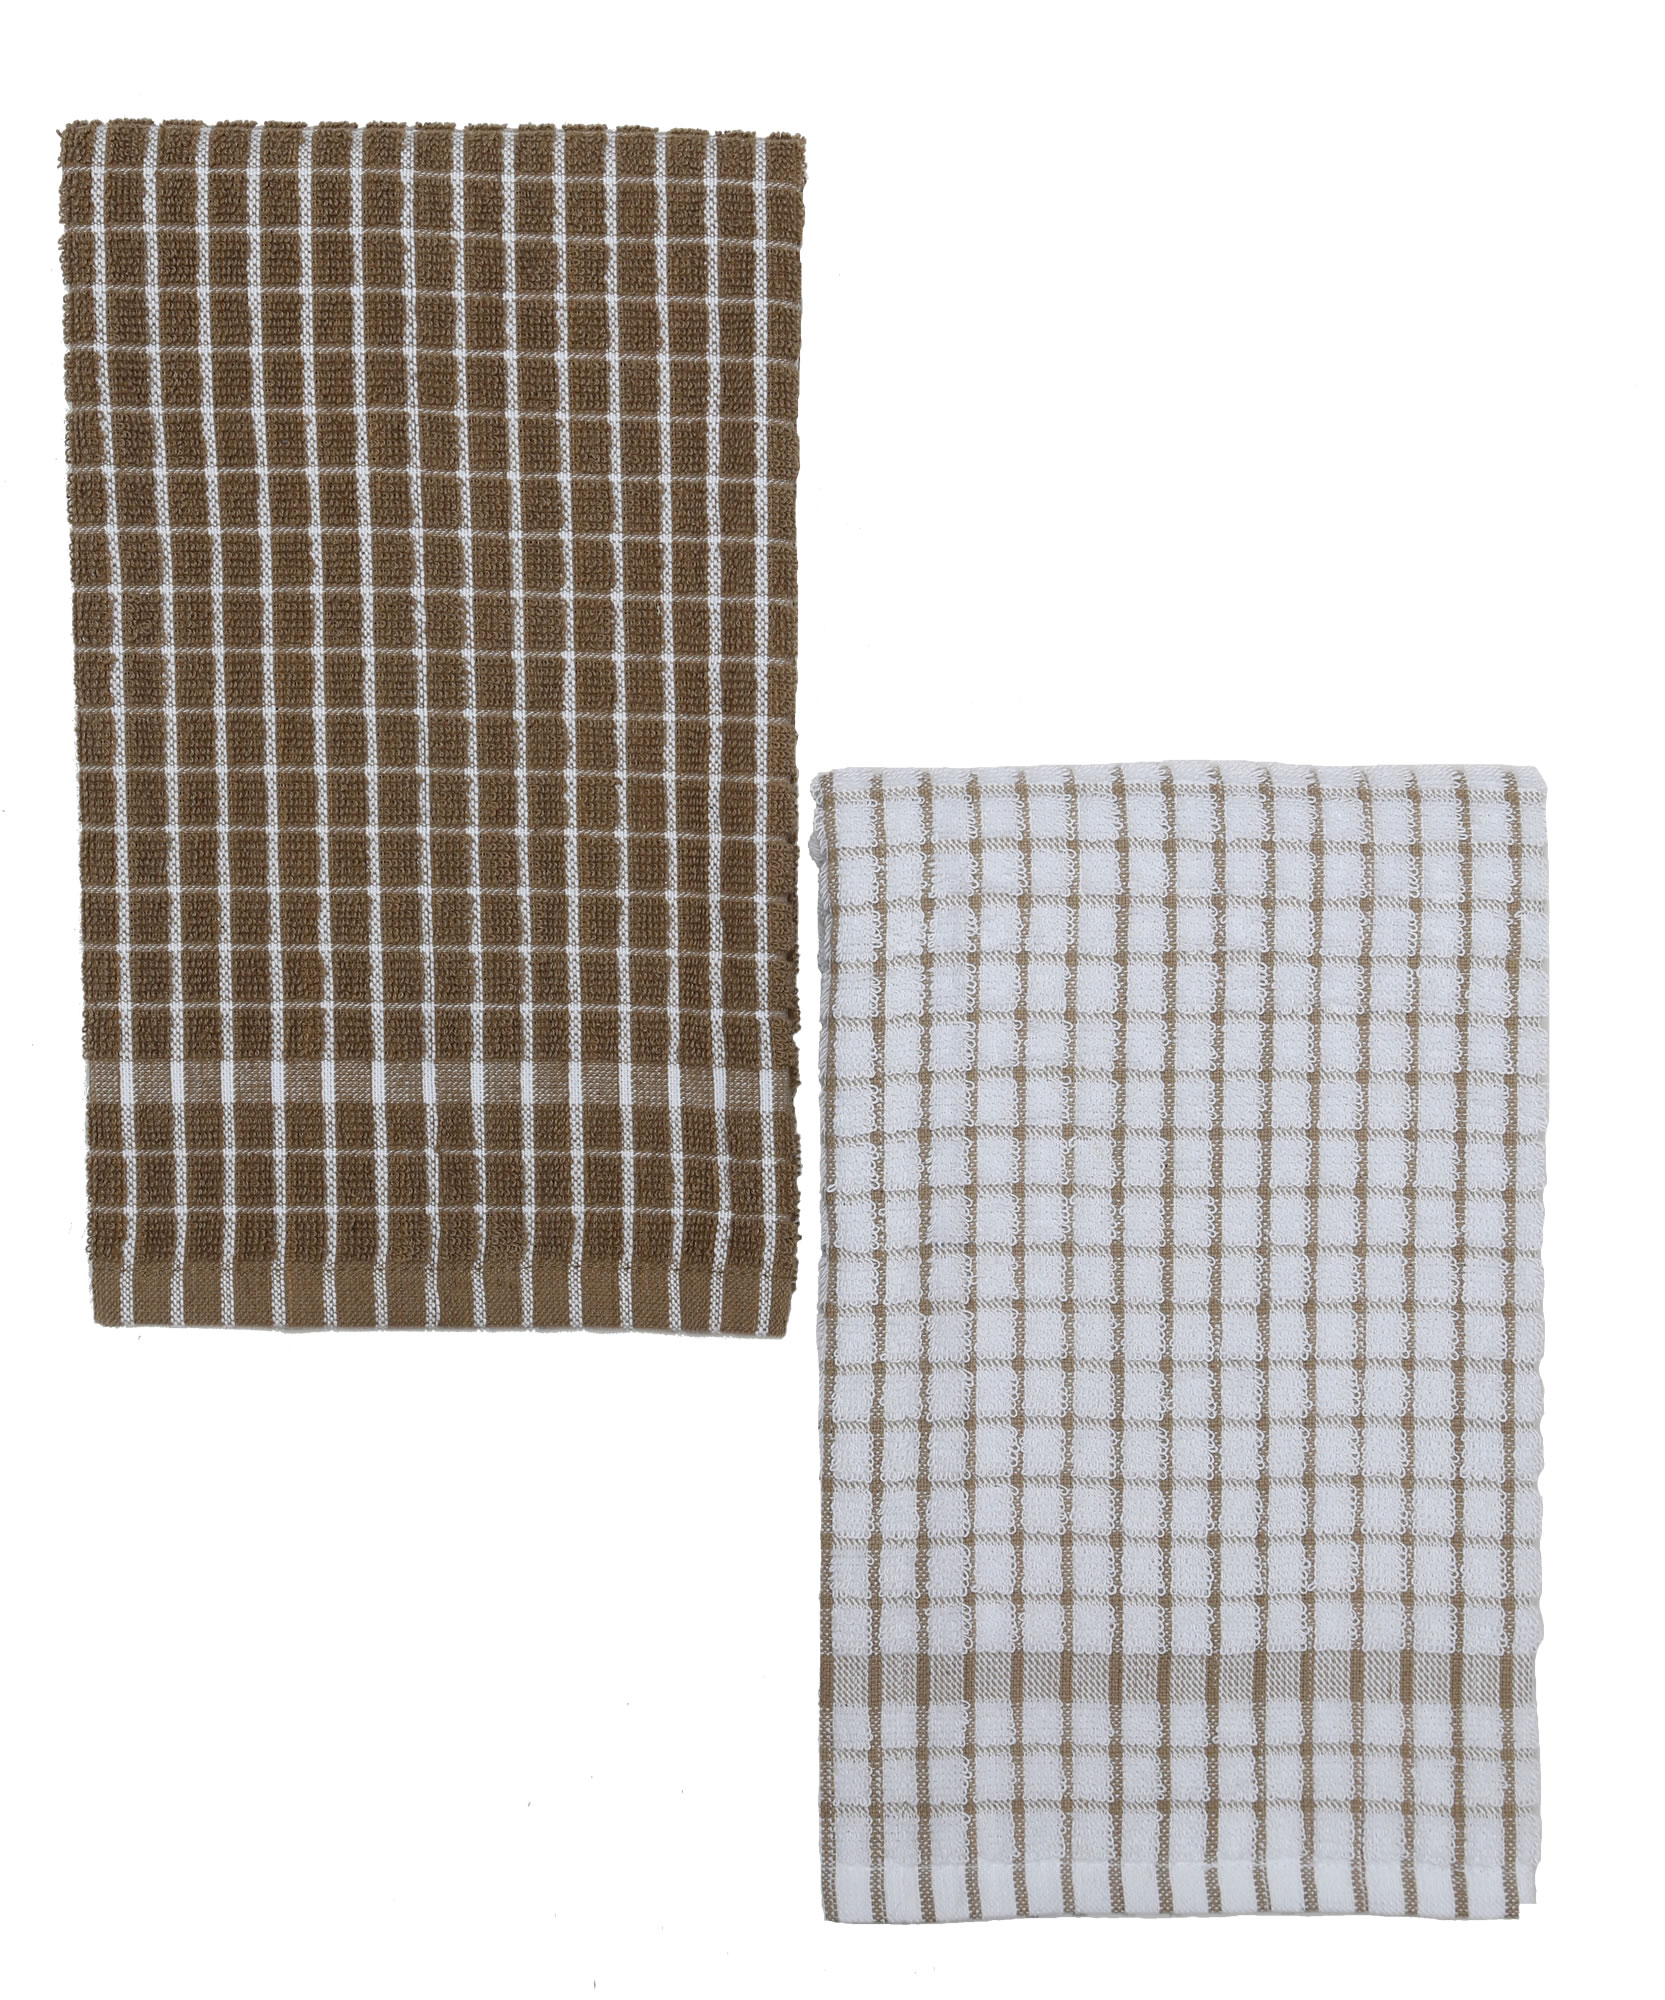 Kuk\'s Cuisine Kitchen Towels (Set of Two) Mono Pattern – Brown ...